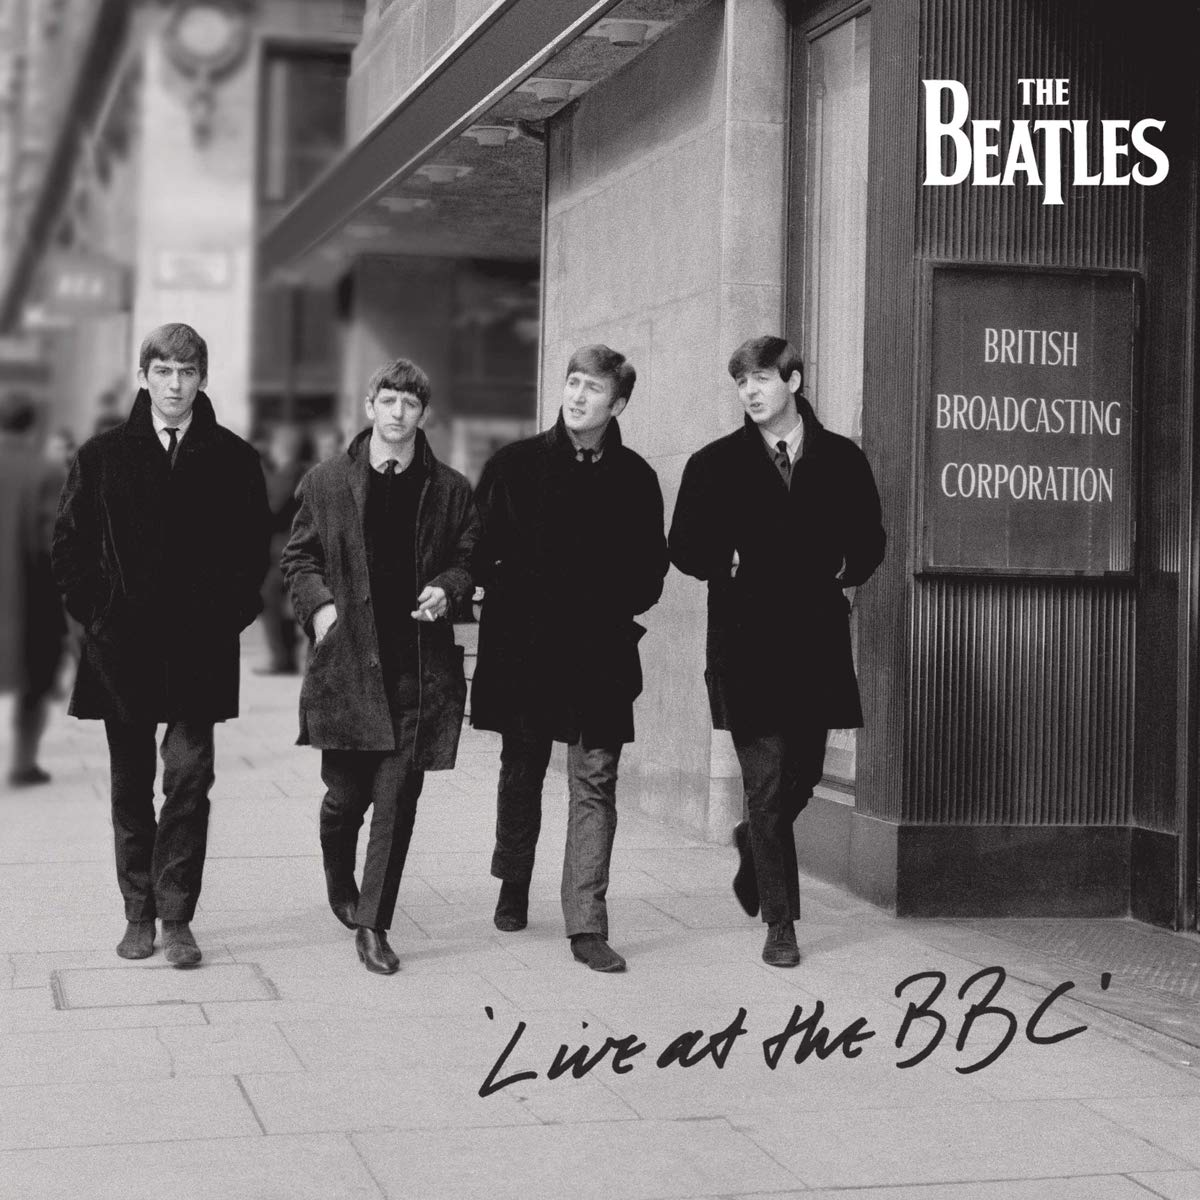 The Beatles - Live At The BBC [2 CD] - Amazon.com Music